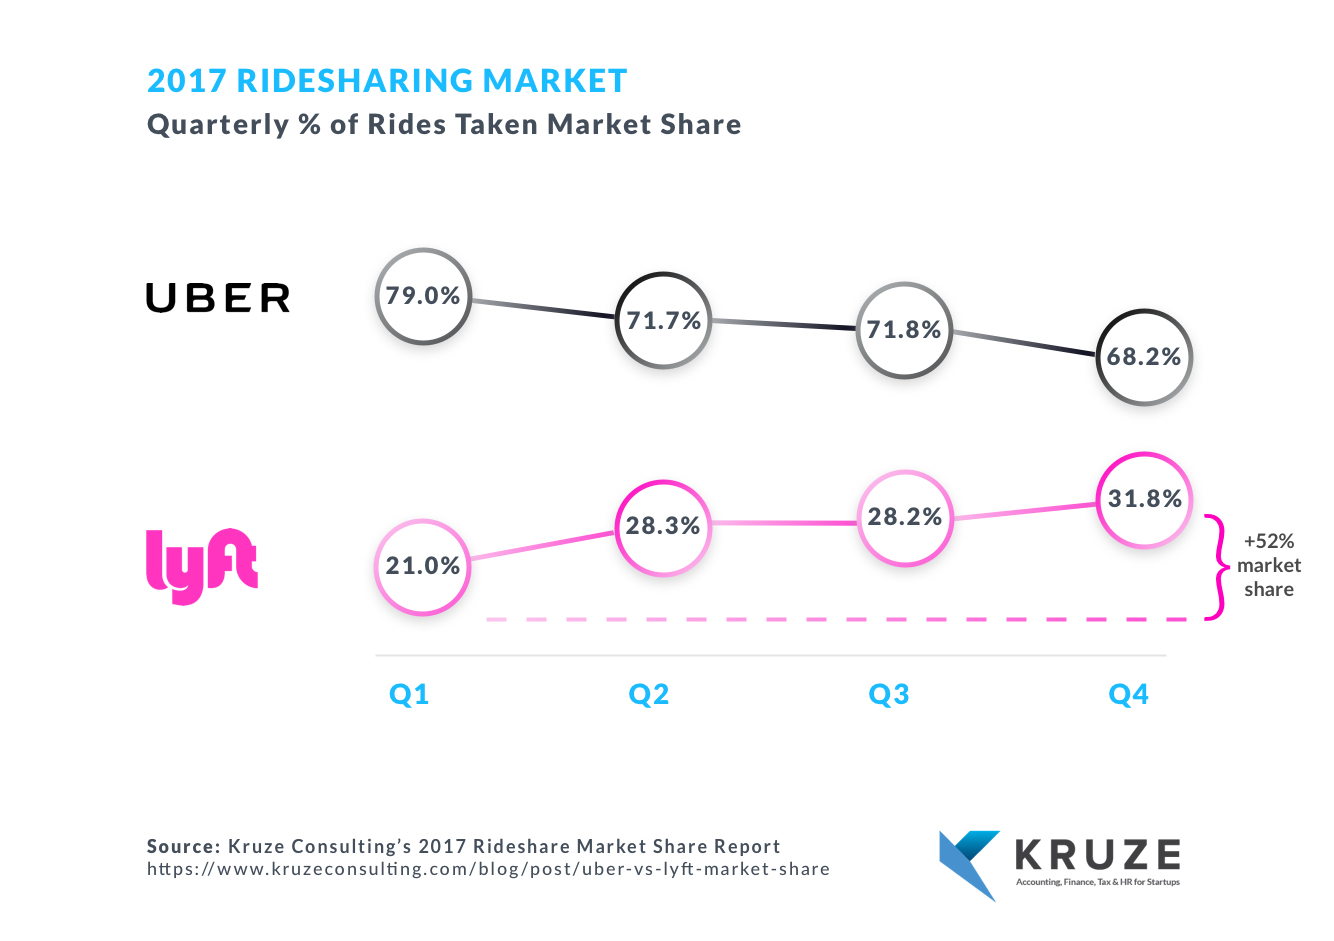 2017 Ride Sharing Market